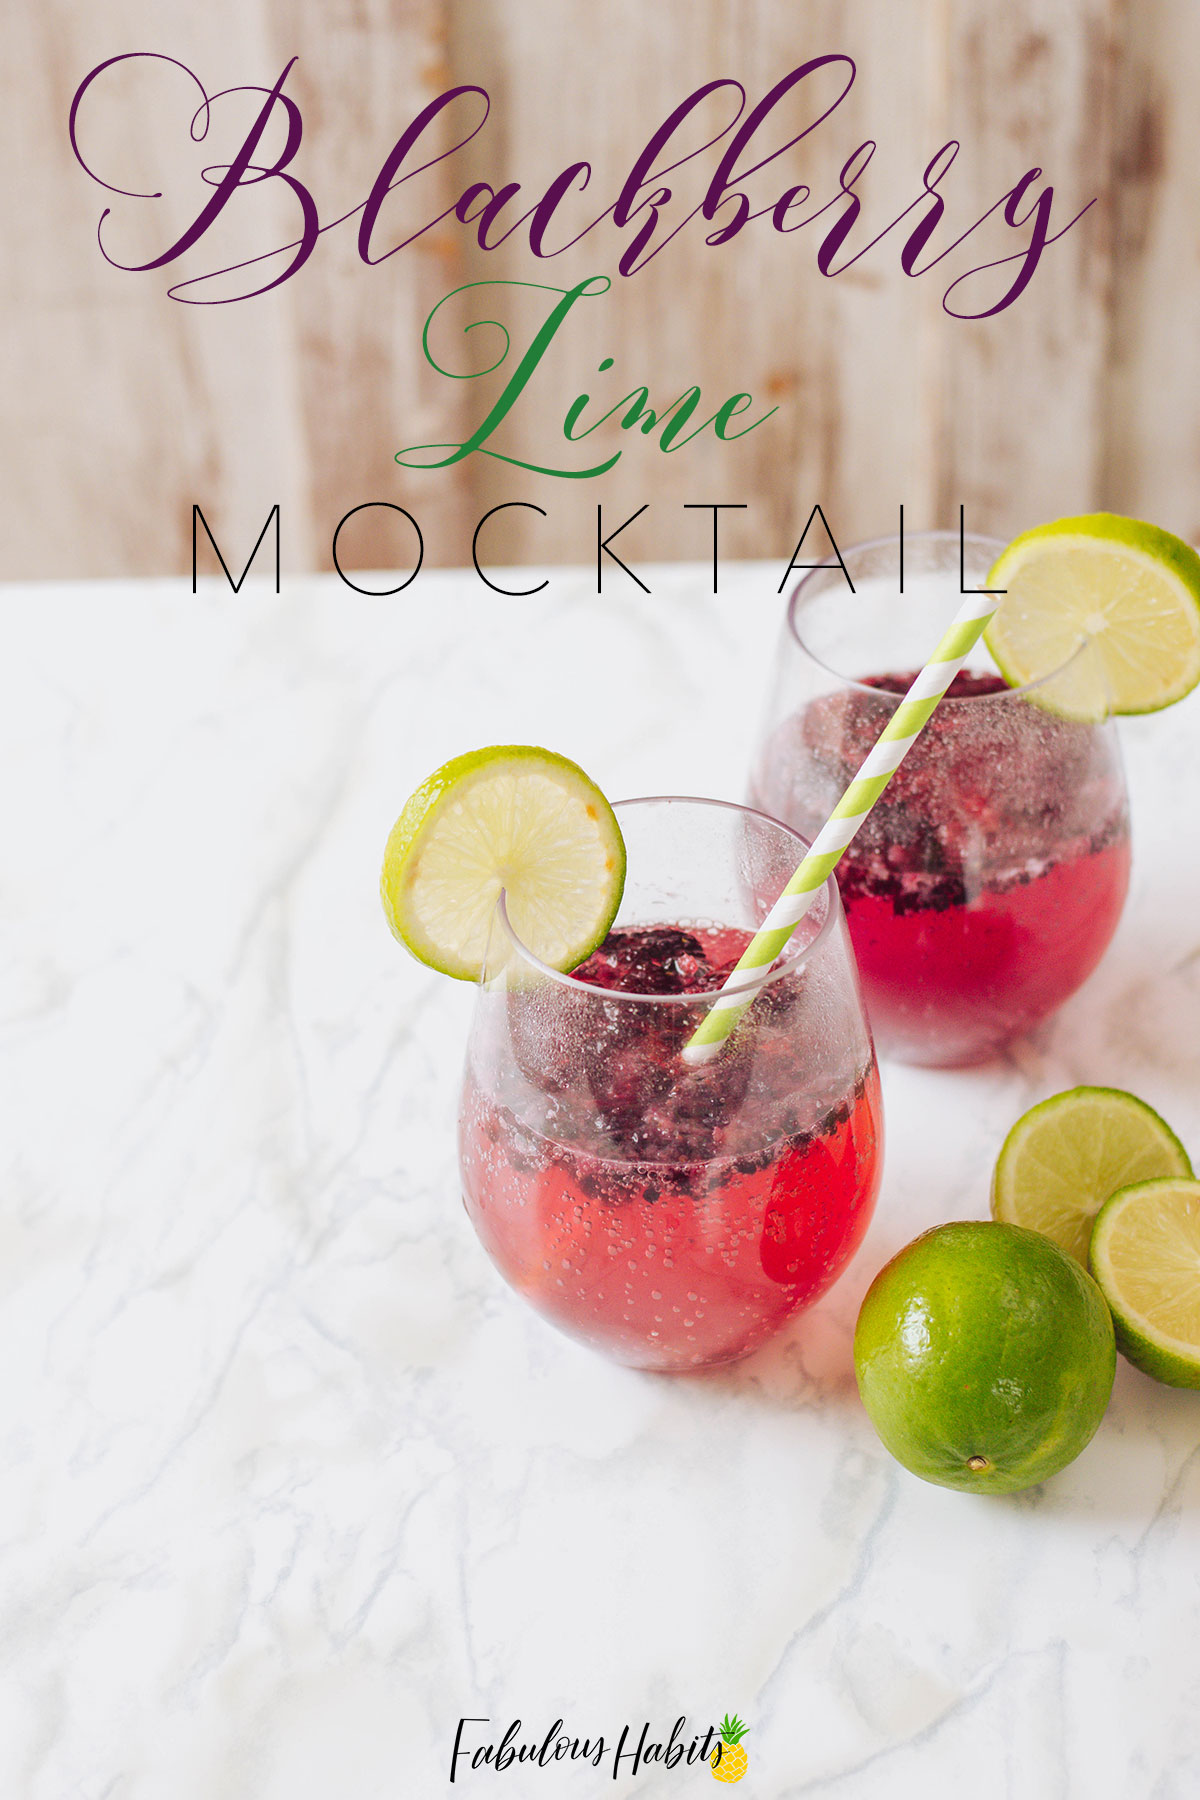 An easy mocktail to serve your guests - all it takes is some blackberries, lime and sparkling water. Yes, this Blackberry Lime Mocktail will totally impress your guests! #mocktailrecipe